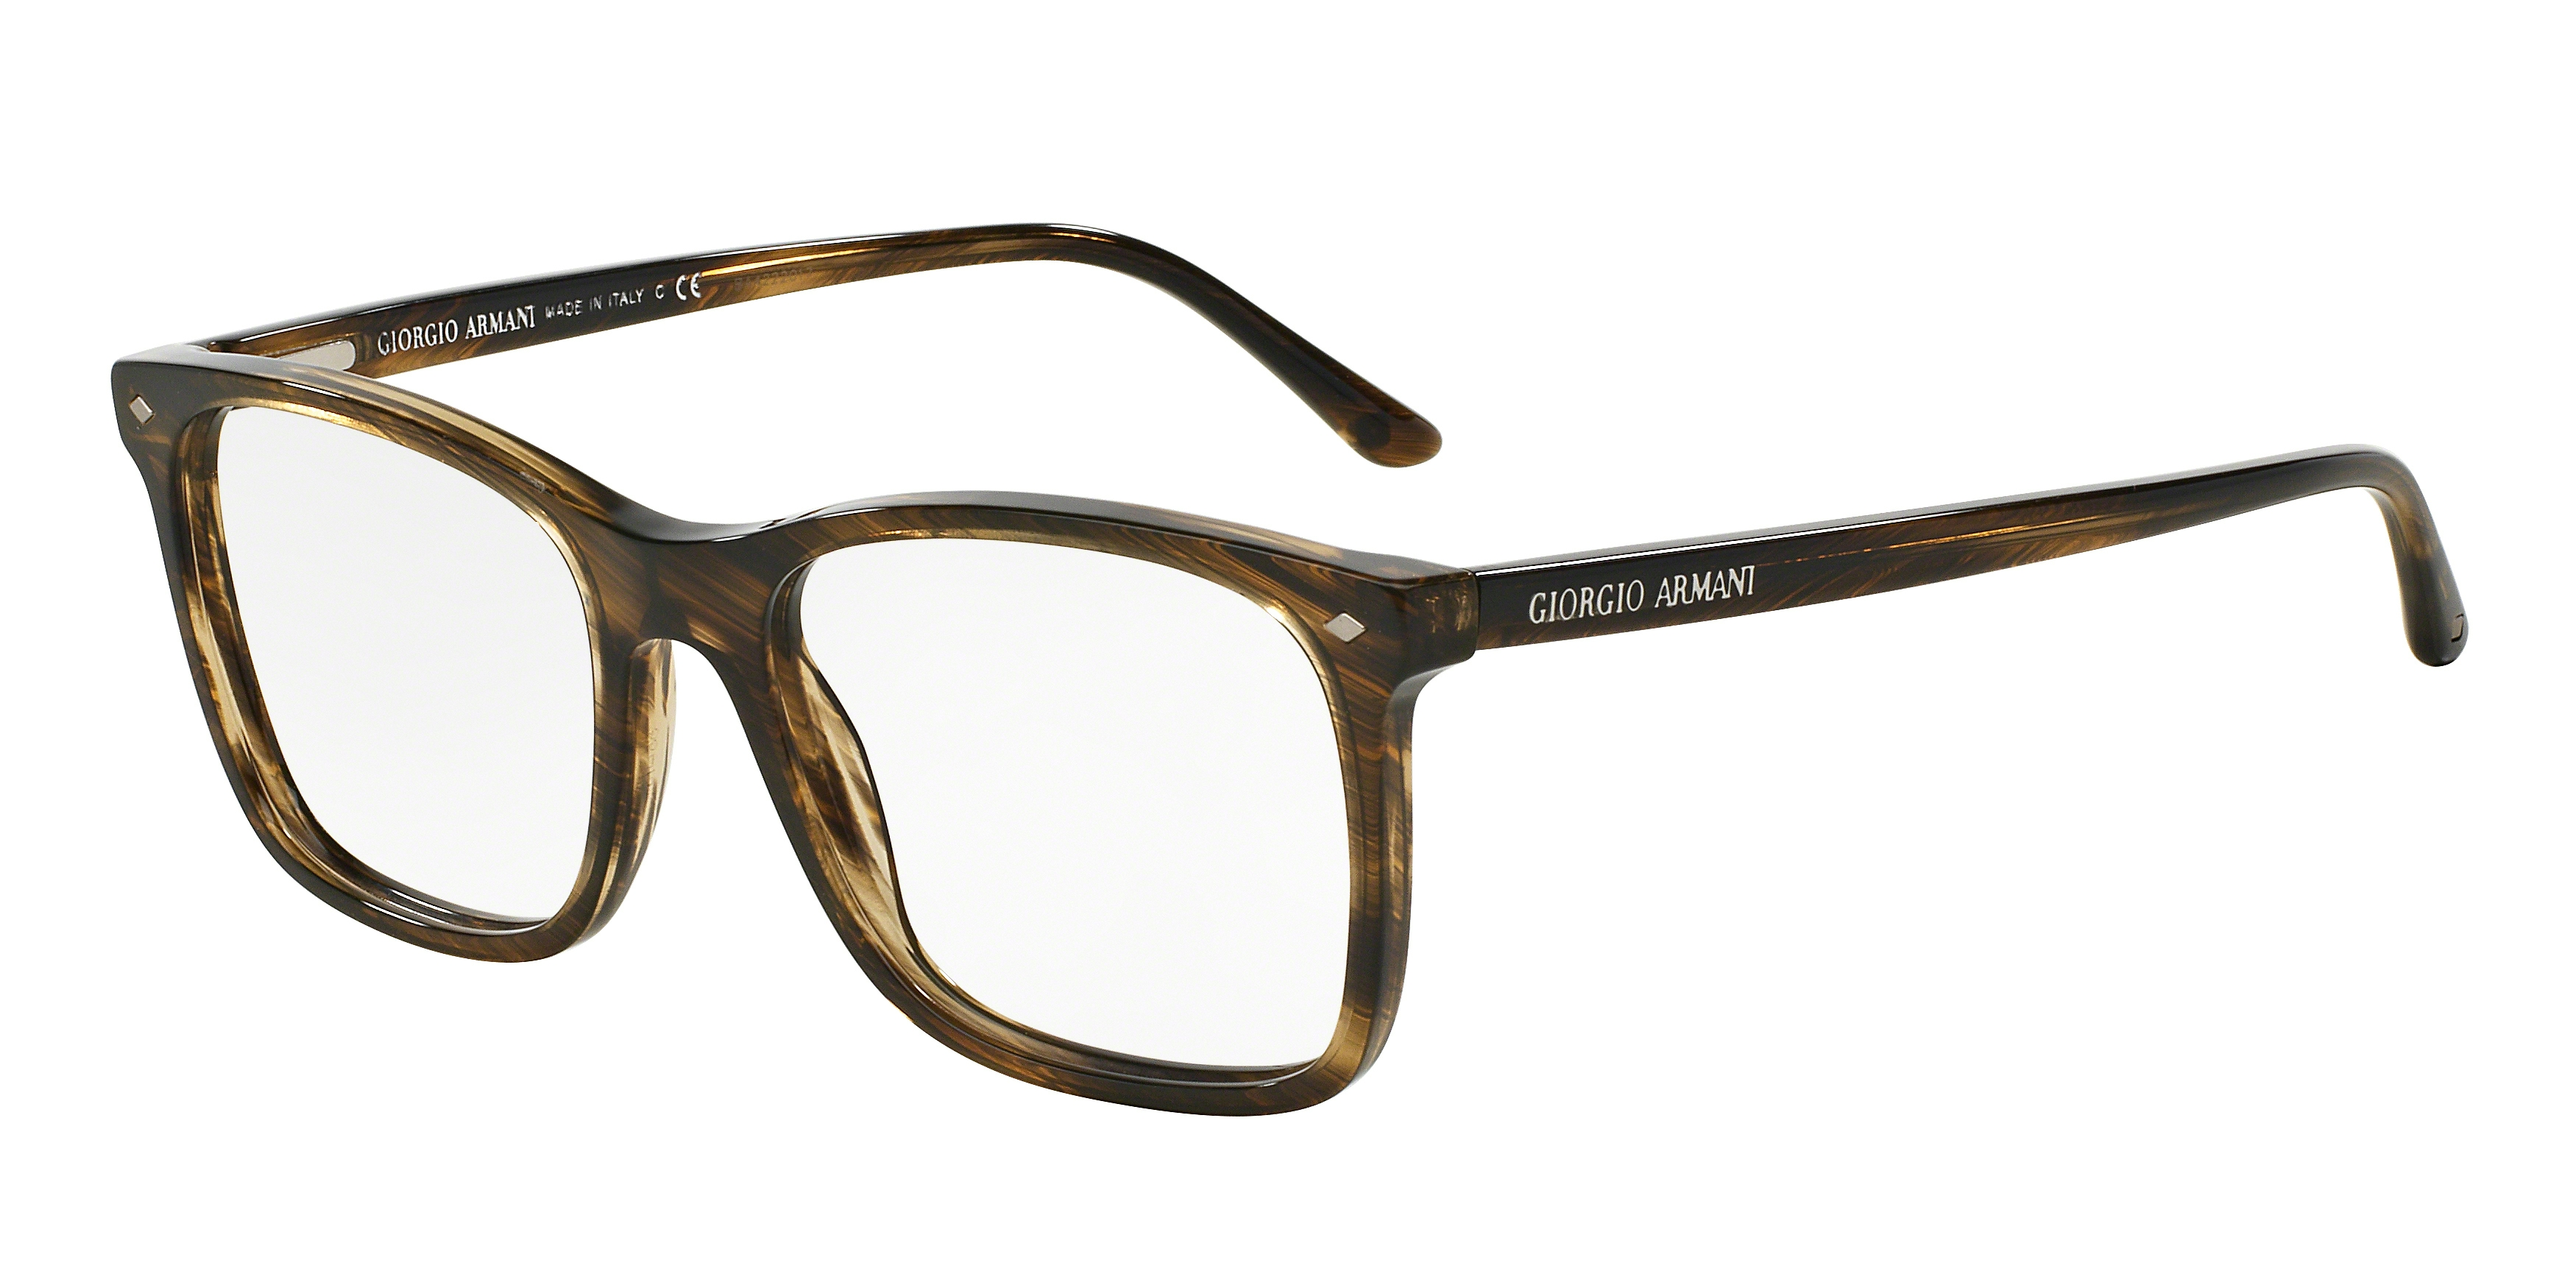 253ad58b937 Giorgio Armani Frames Of Life - David Clulow